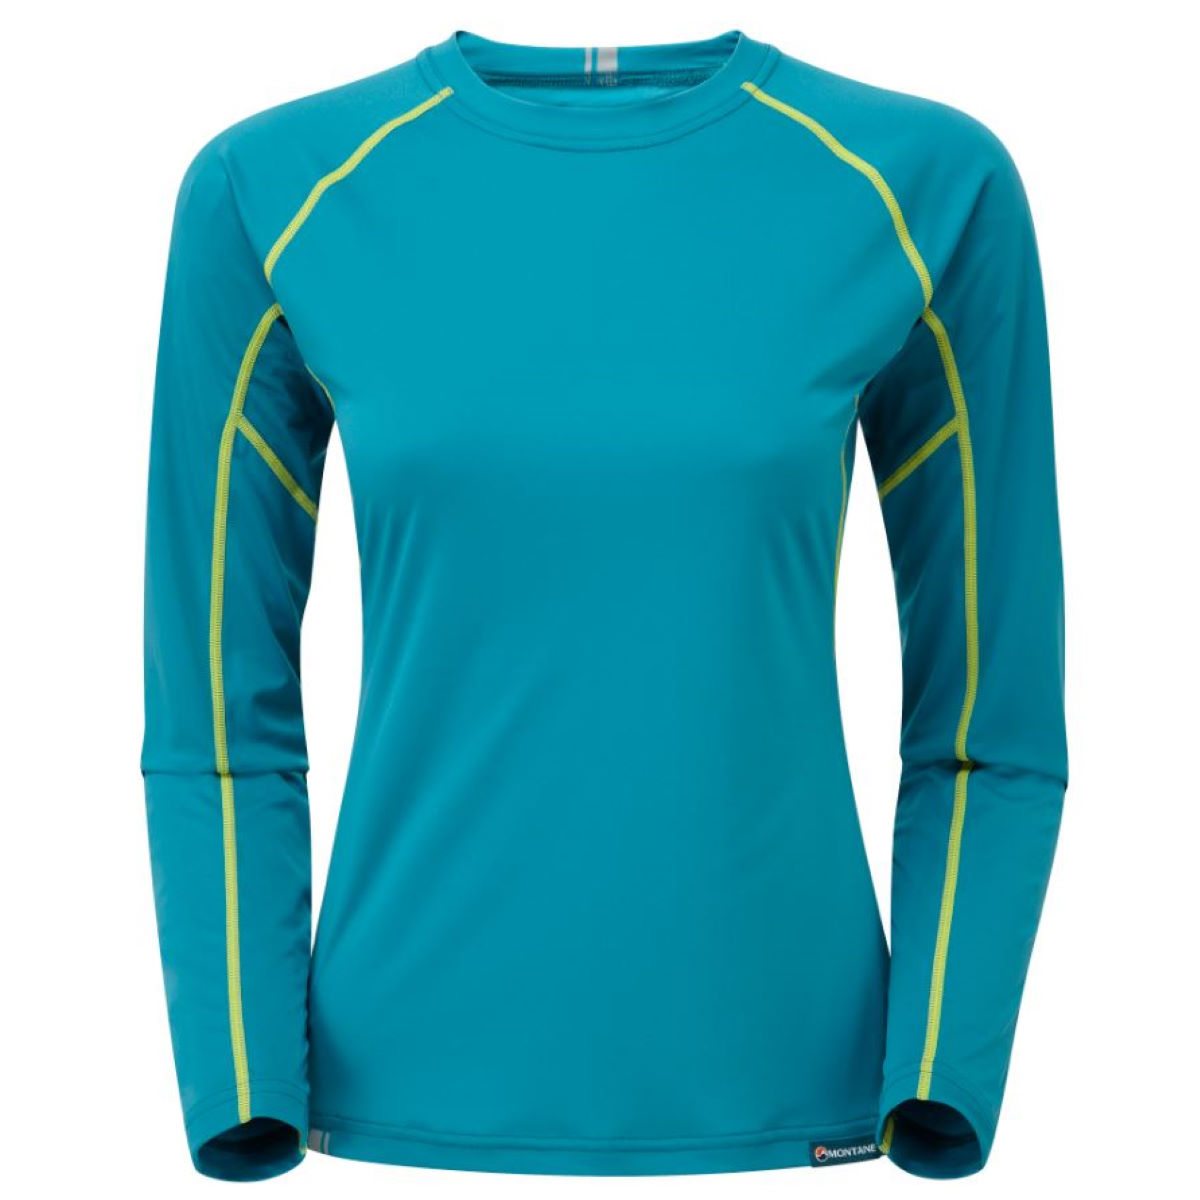 Montane - Women's Sonic Long Sleeve T-Shirt - XL